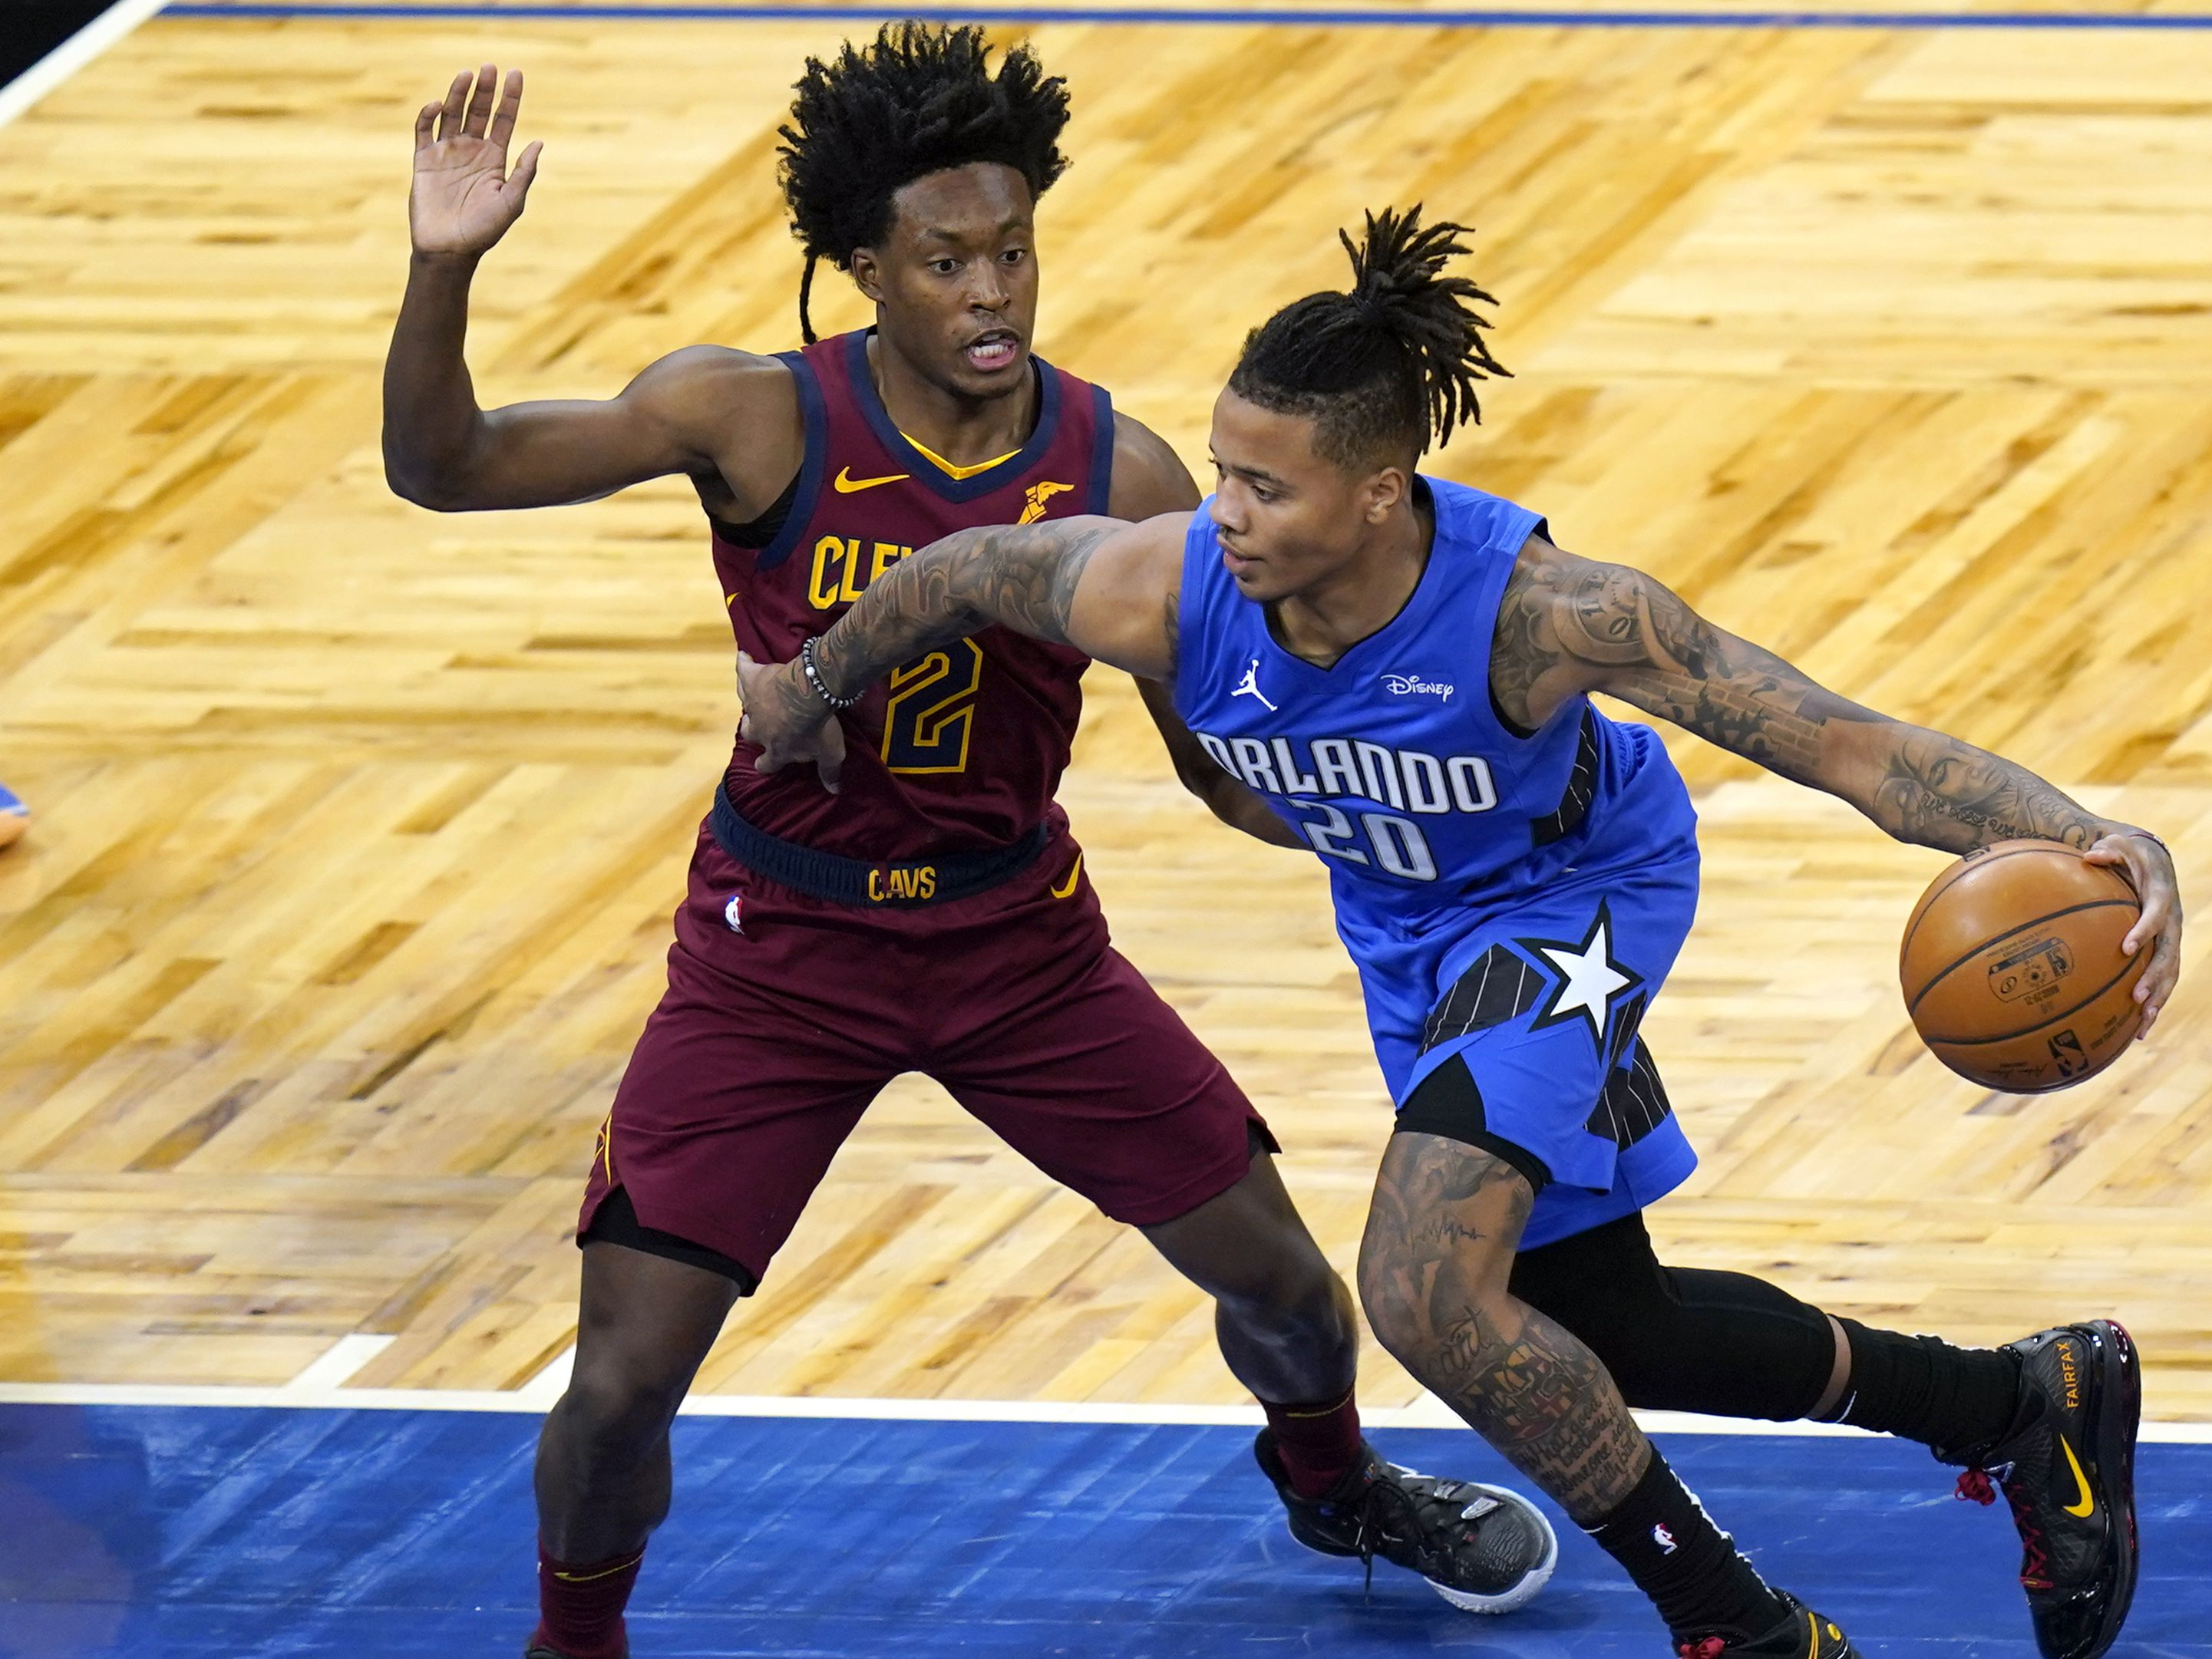 Fultz tears ACL, out for season; Magic beat Cavs 105-94